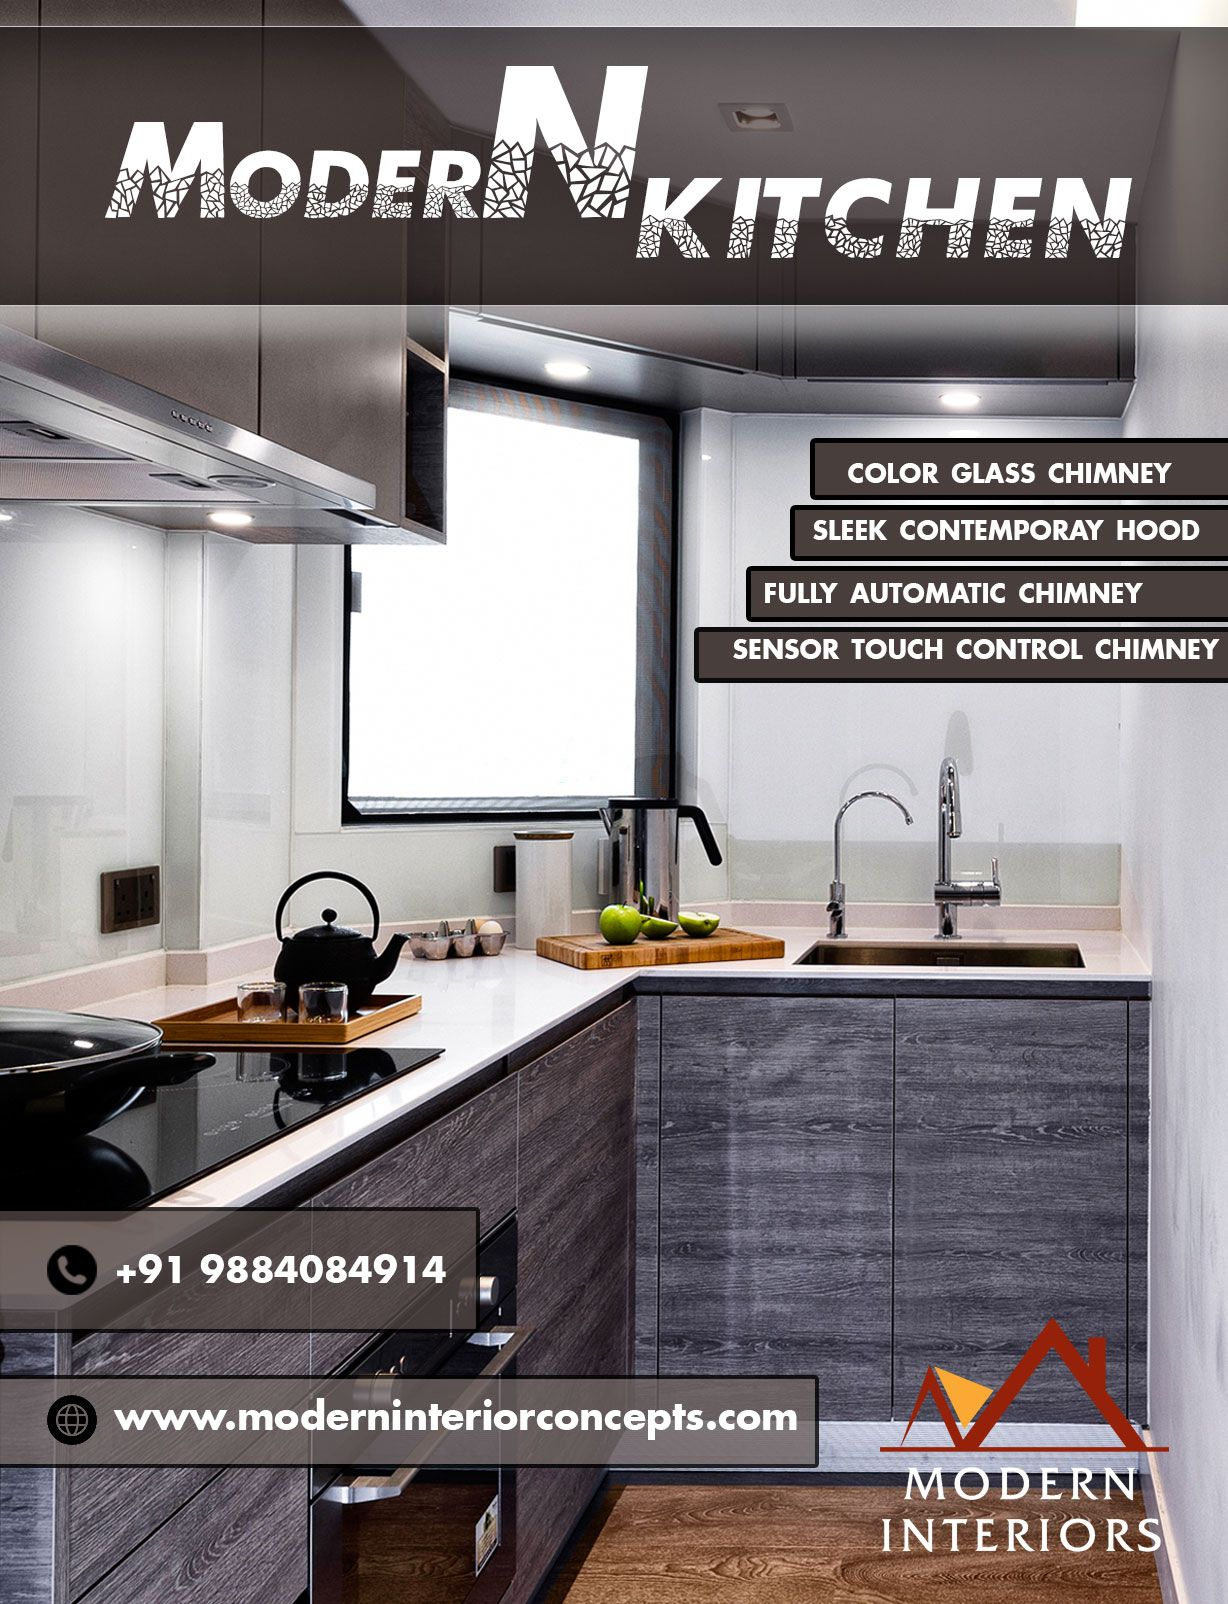 are you looking for modern kitchen ? call +91 9884084914   http